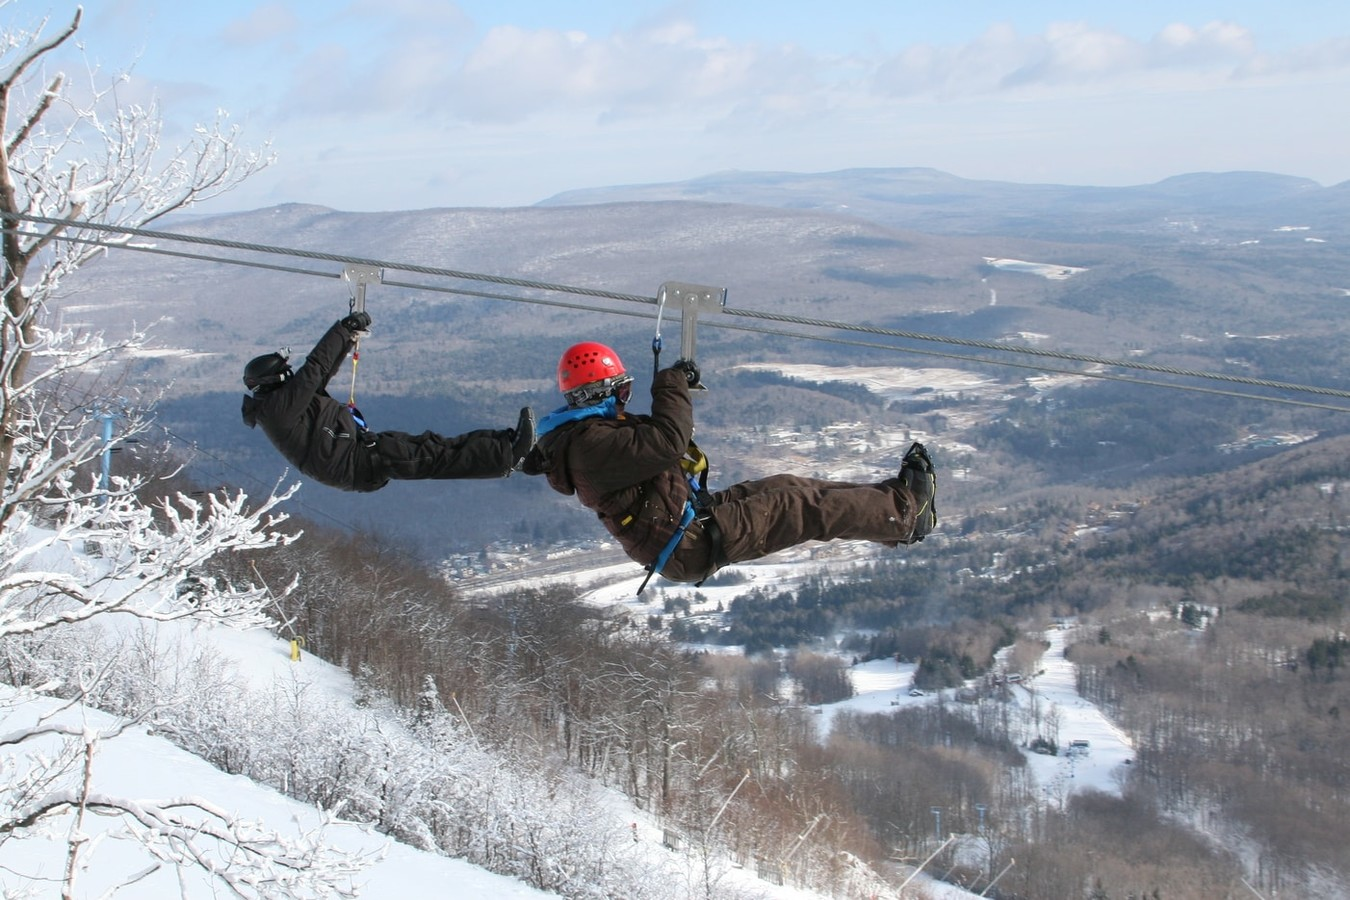 Winter zipline adventure at Hunter Mountain in the Catskills